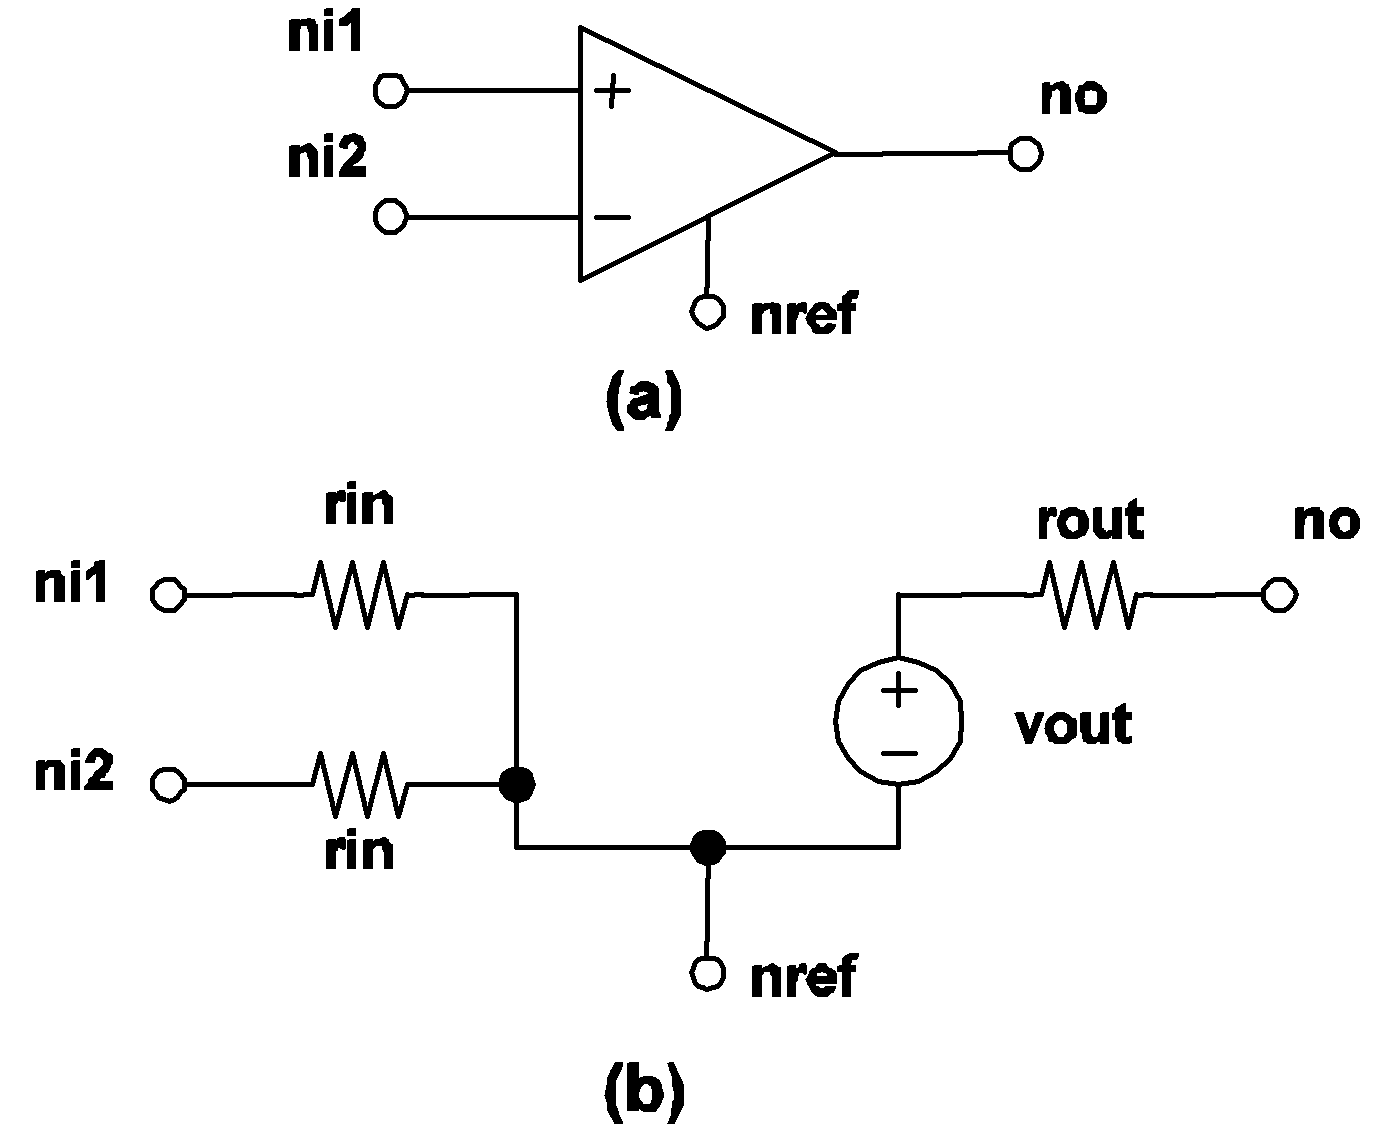 Simplis reference device models used in simplis 49 simplis comparator model a symbol for comparator b model for comparator the nodes n1 n2 are the two input nodes the nodes no and nref are the biocorpaavc Images